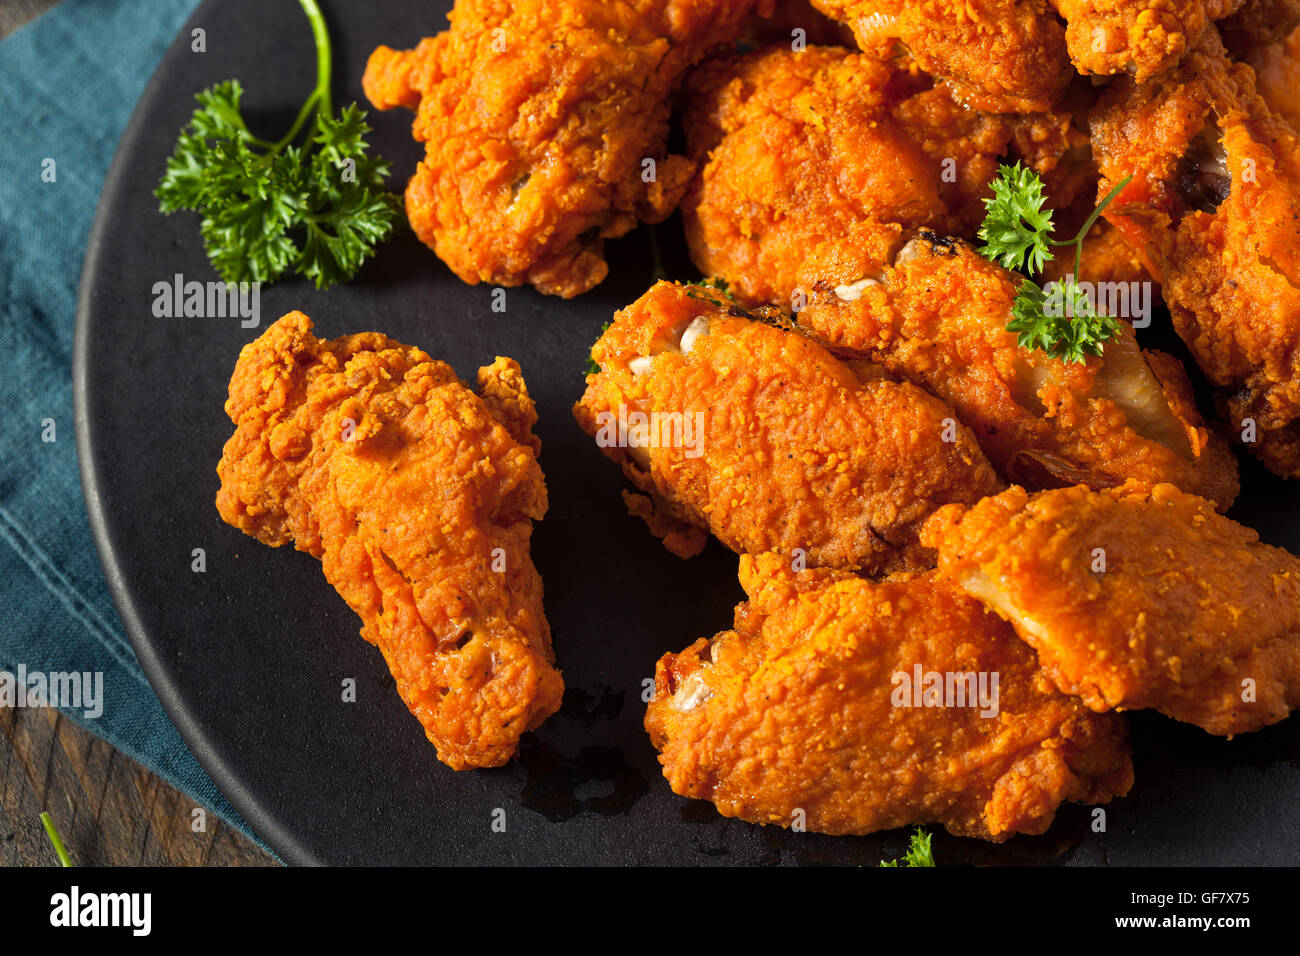 Spicy Deep Fried Breaded Chicken Wings with Ranch Stock Photo